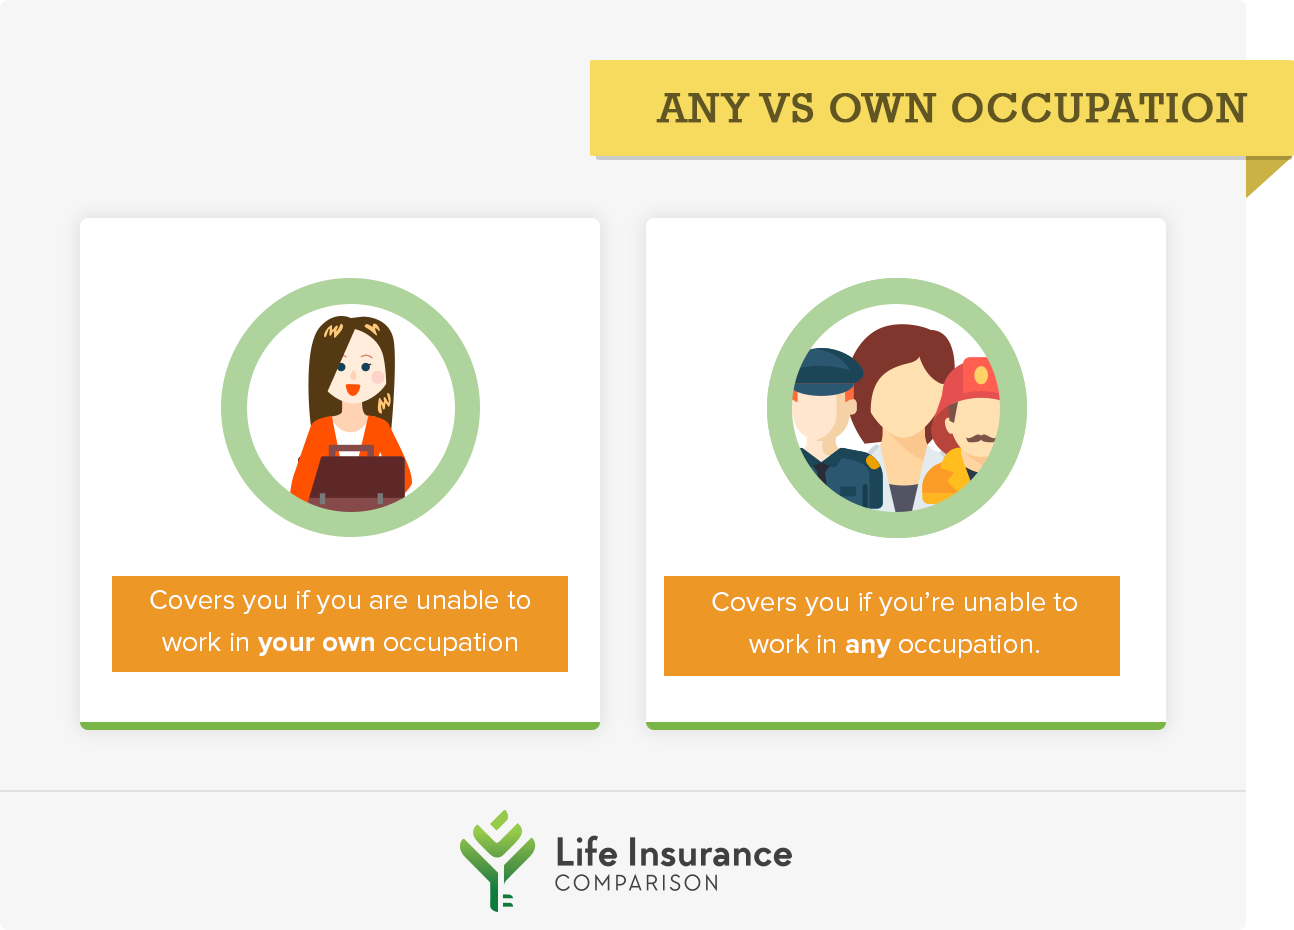 Any vs own occupation for life insurance